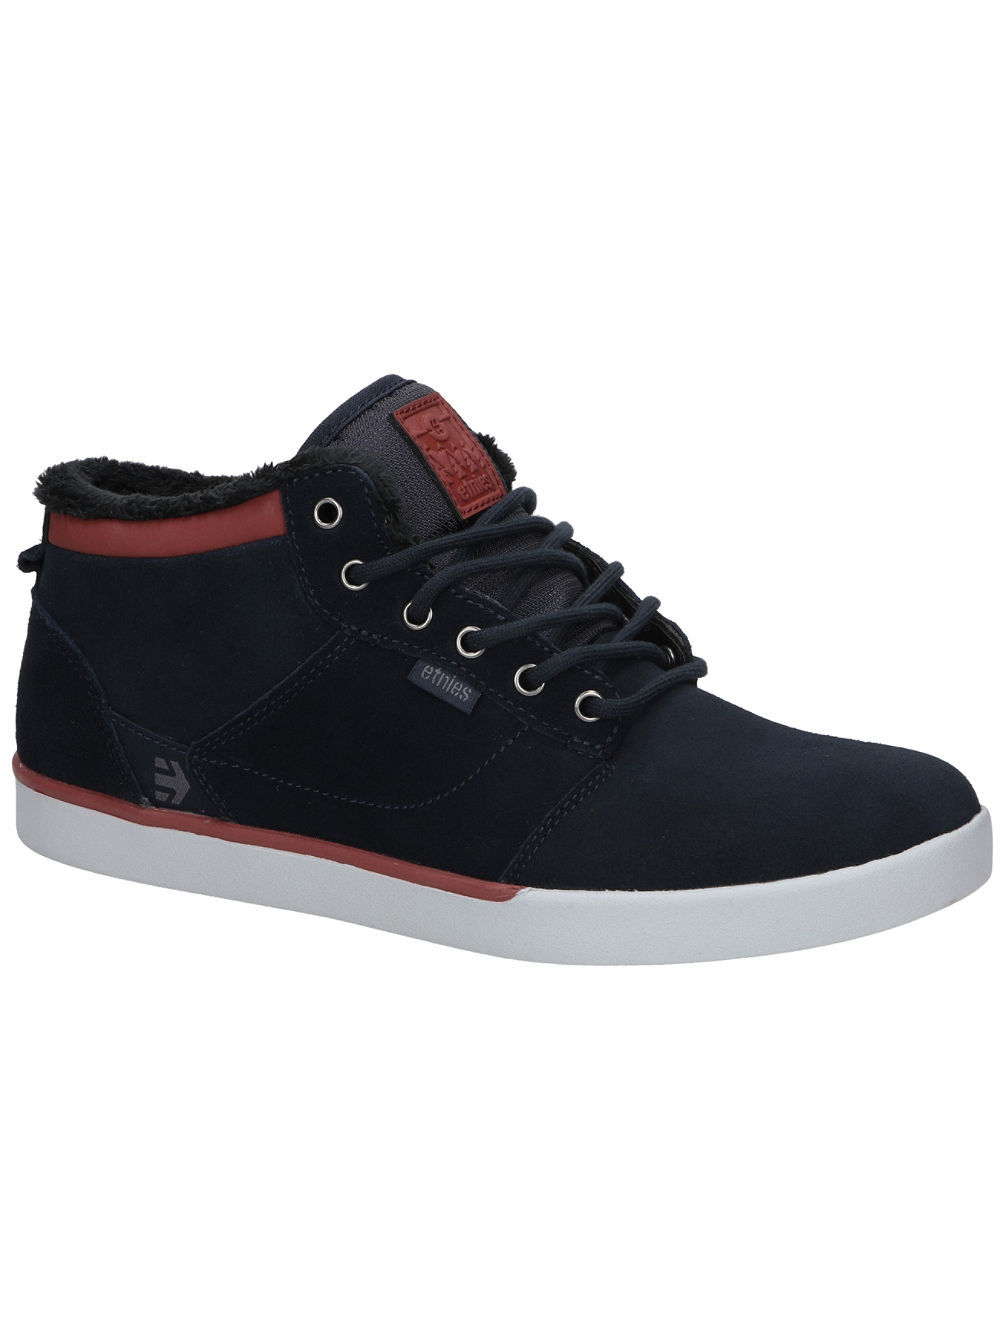 Jefferson Mid Winterschuhe